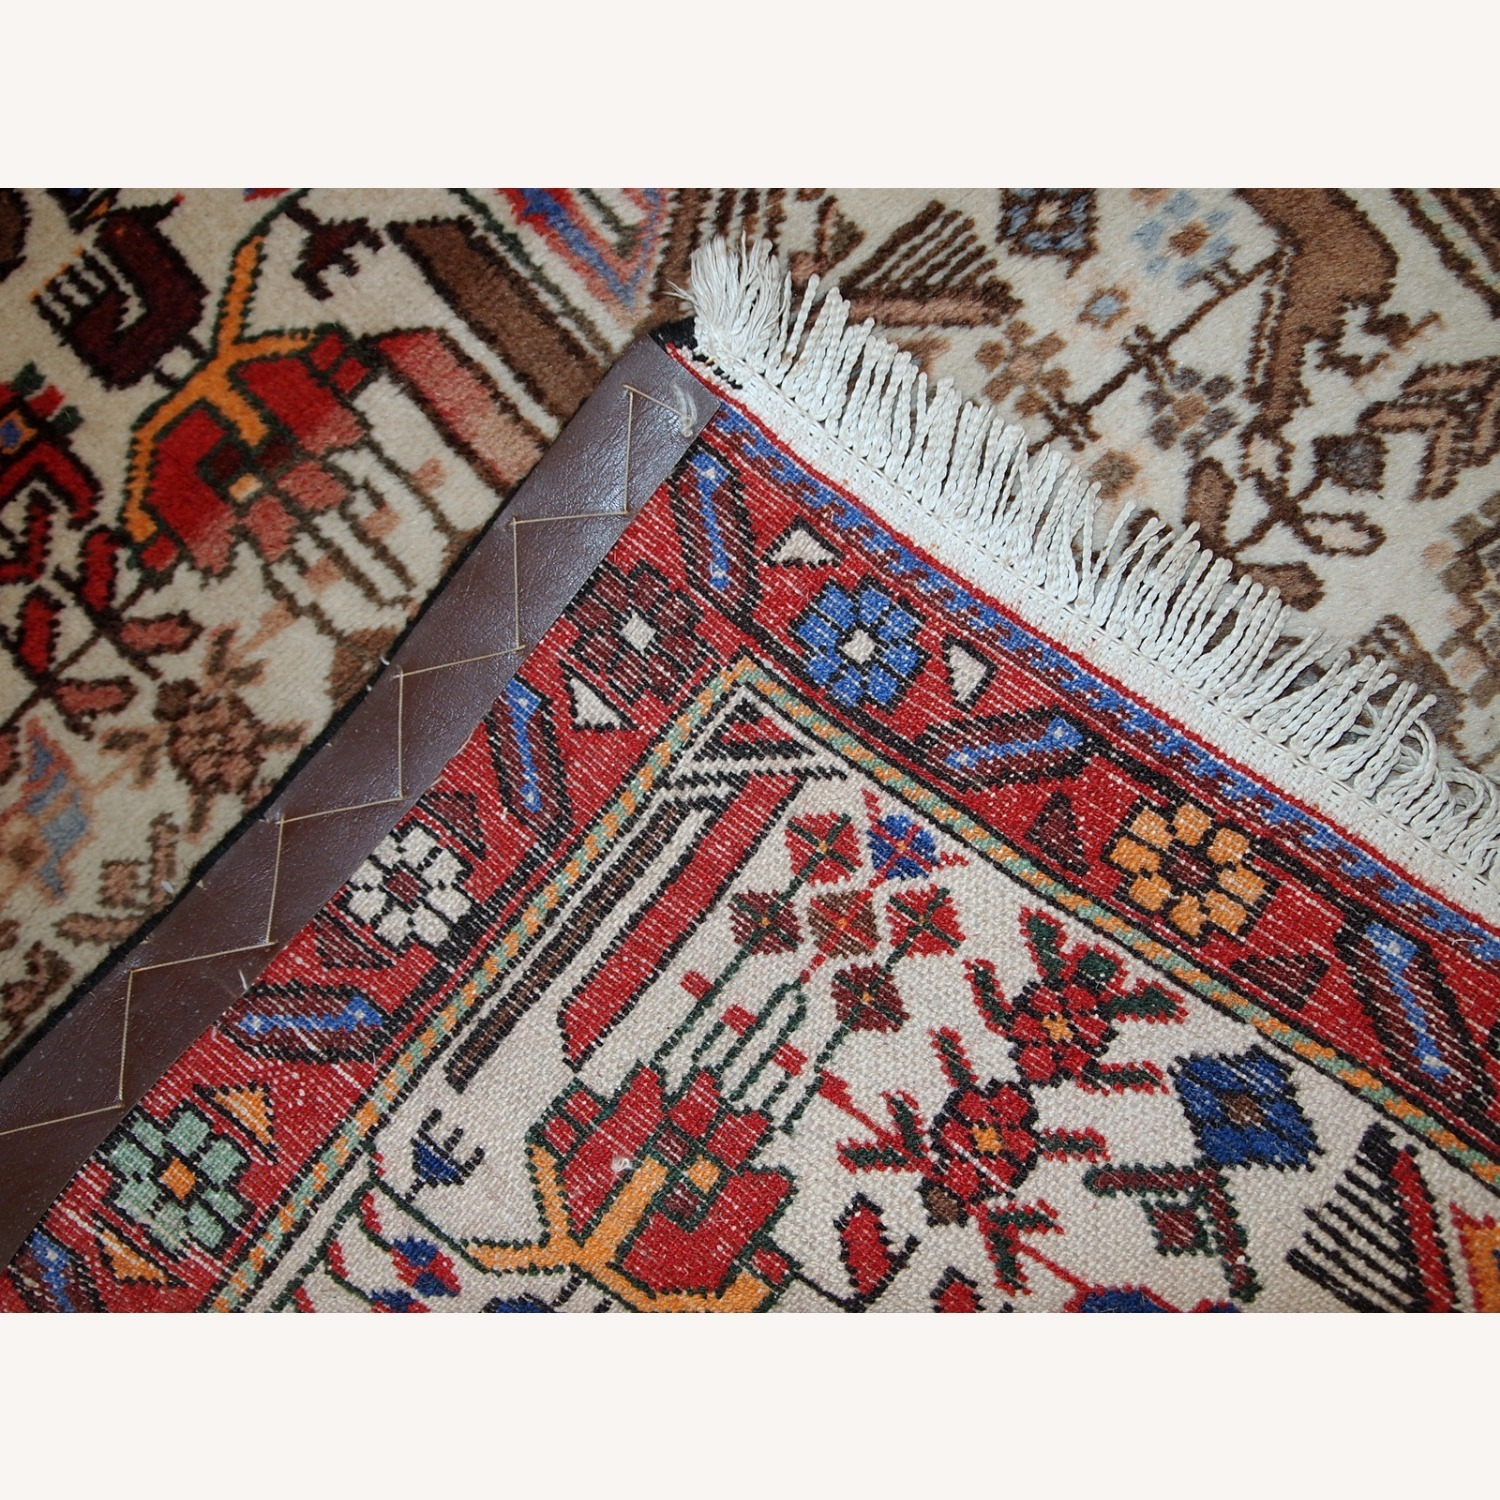 Handmade antique Persian Mashad rug - image-5